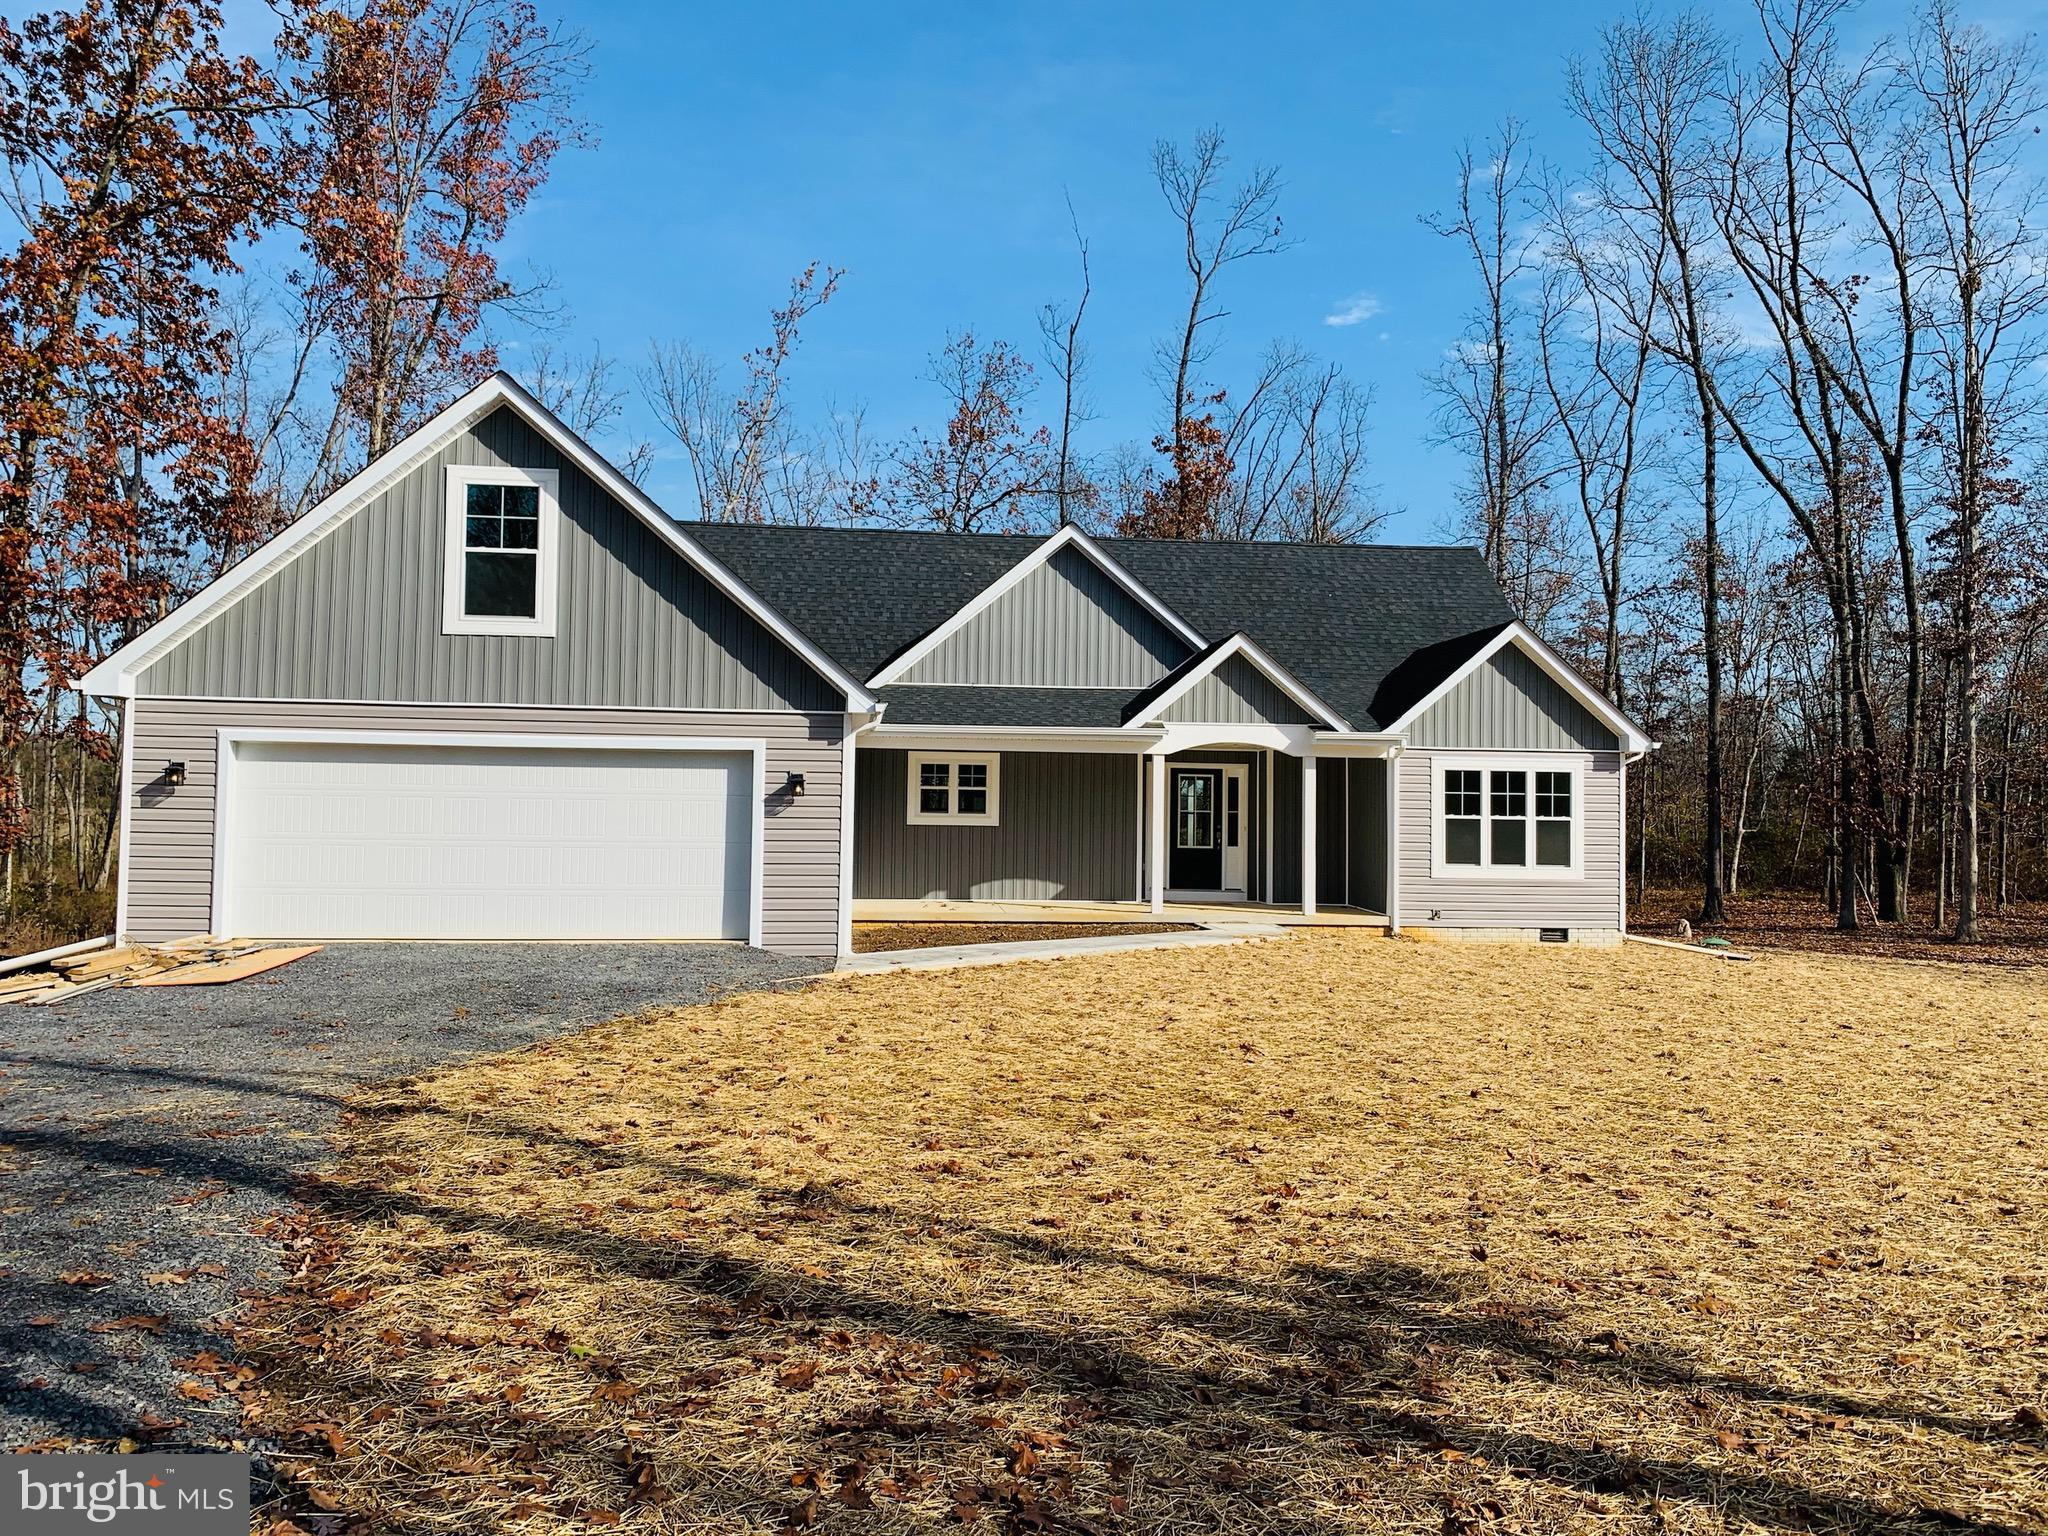 Just in time for Christmas!  Just completed Rancher style home with 4 bedrooms, 3 full baths,  large